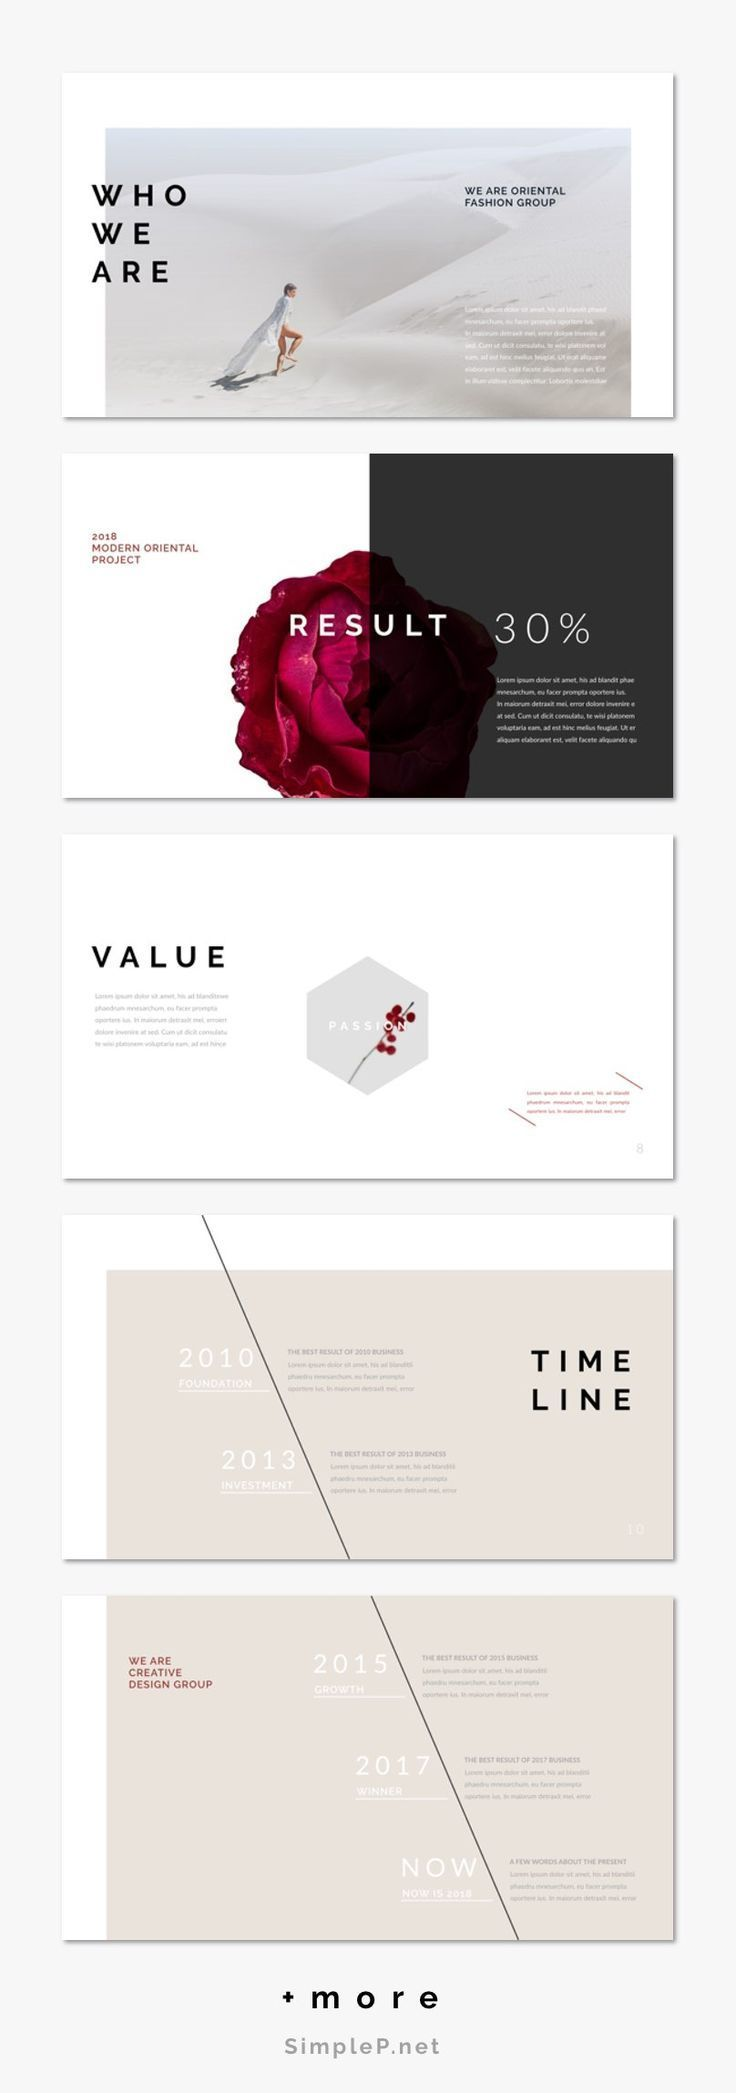 Fashion Business Powerpoint Presentation Template …